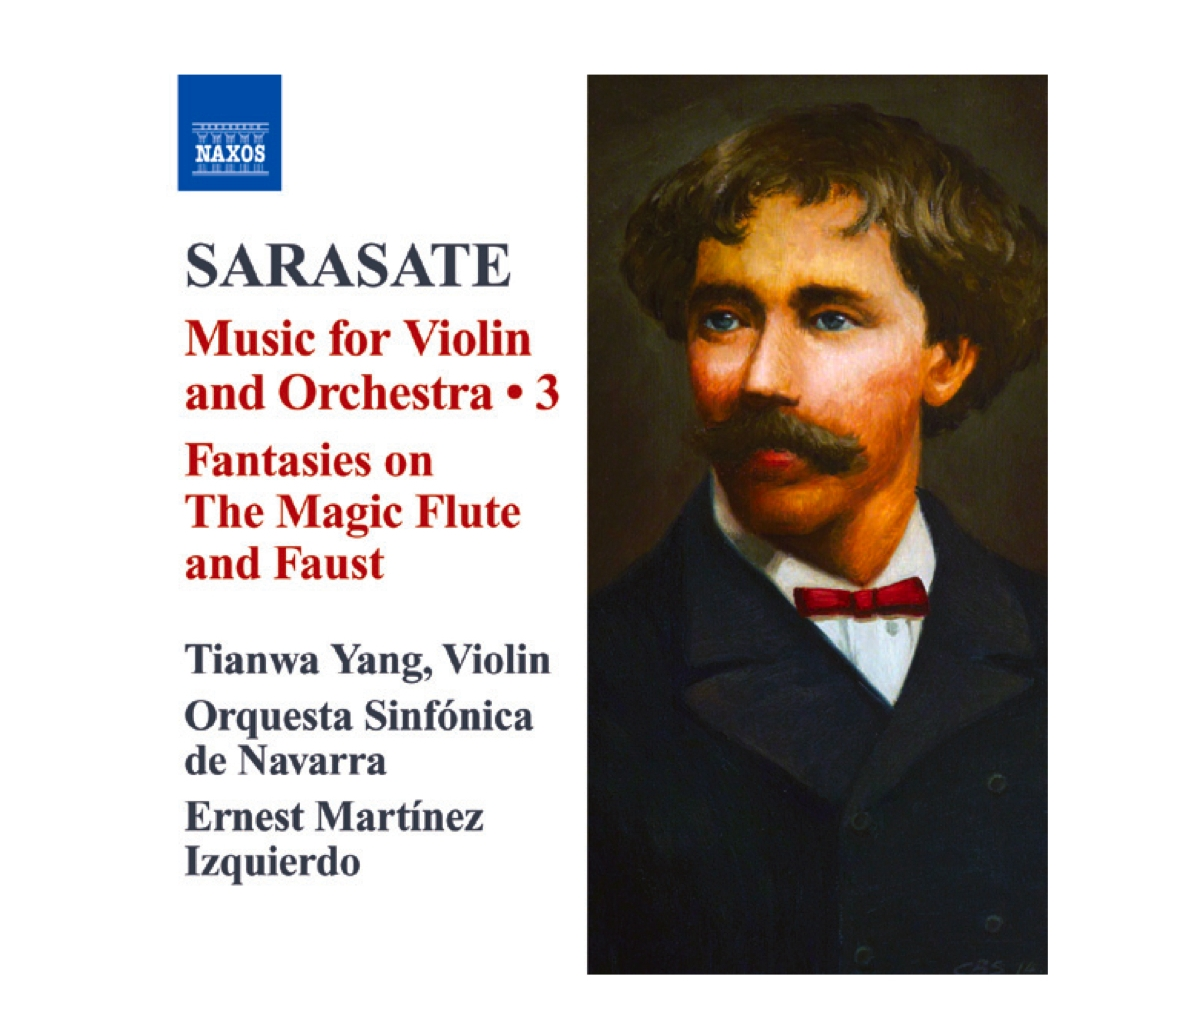 "Pablo de Sarasate:  ""Music for Violin and Orchestra 3"" Fantasies on The Magic Flute and Faust  Tianwa Yang, Violin Orquesta Sinfónica de Navarra Ernest Martinez Izquierdo Label: NAXOS 8.572275   Listen to samples  ·  More info"